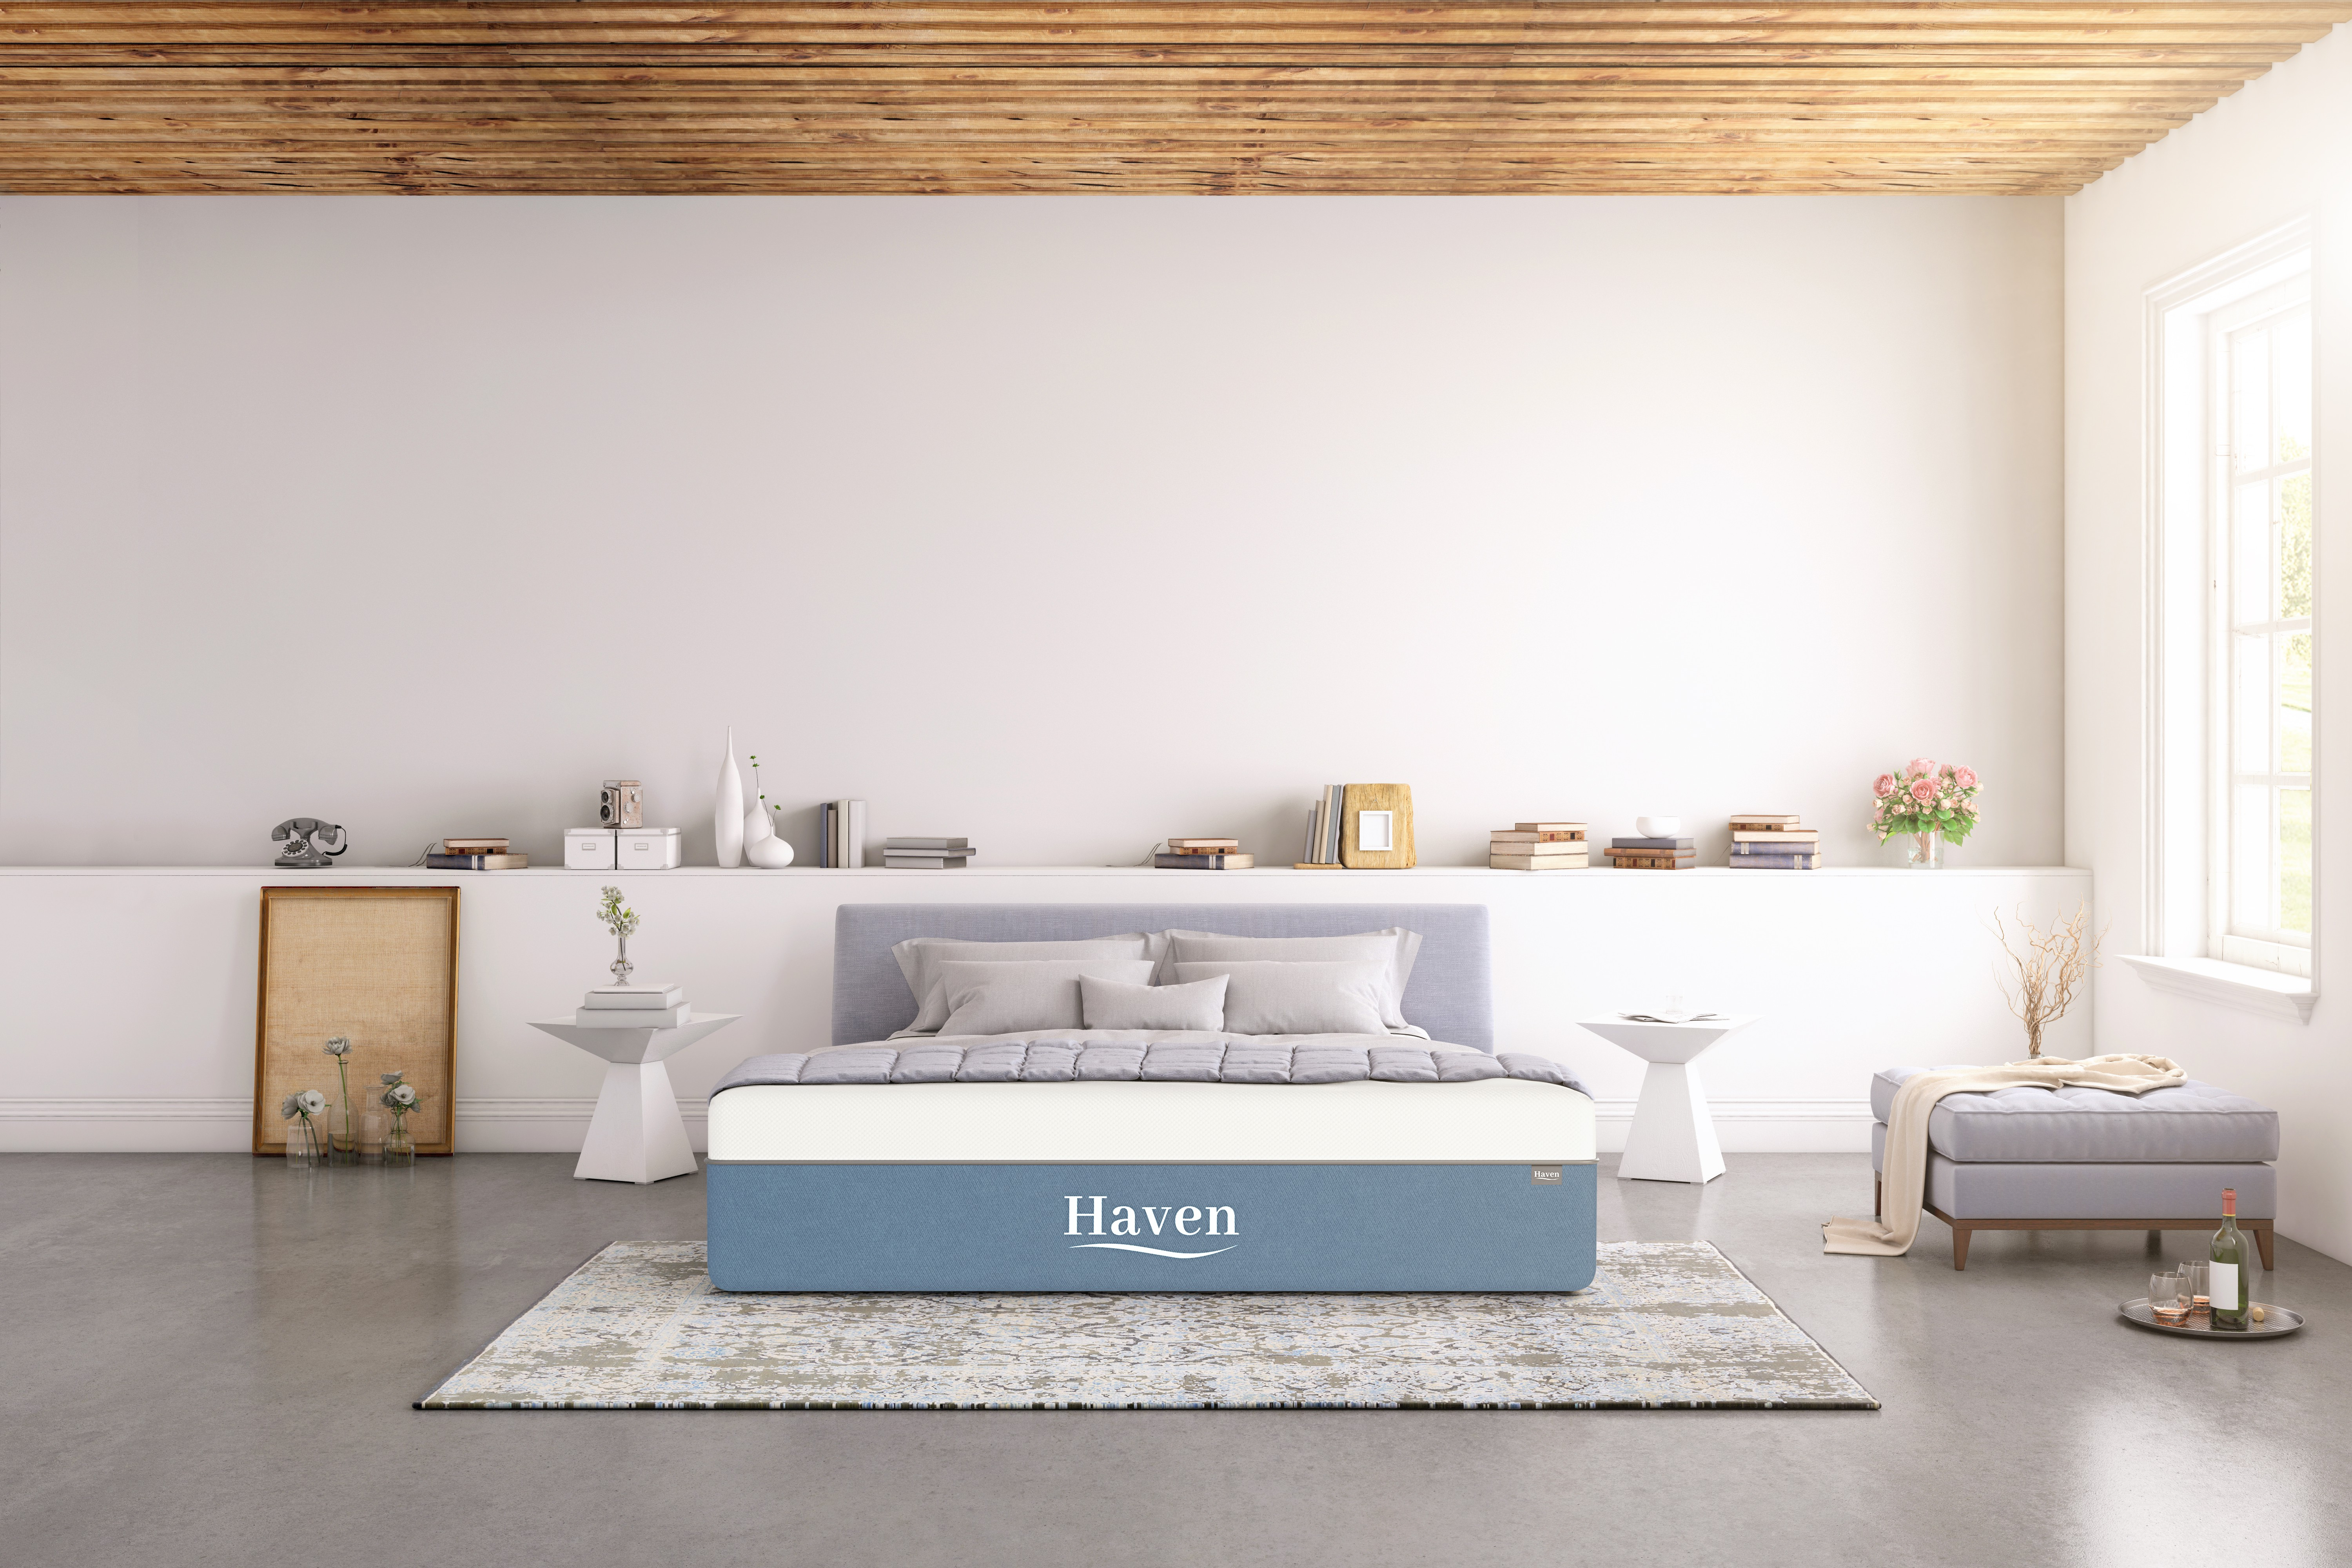 Create Great Product & Lifestyle Images For an Ecommerce Mattress Company